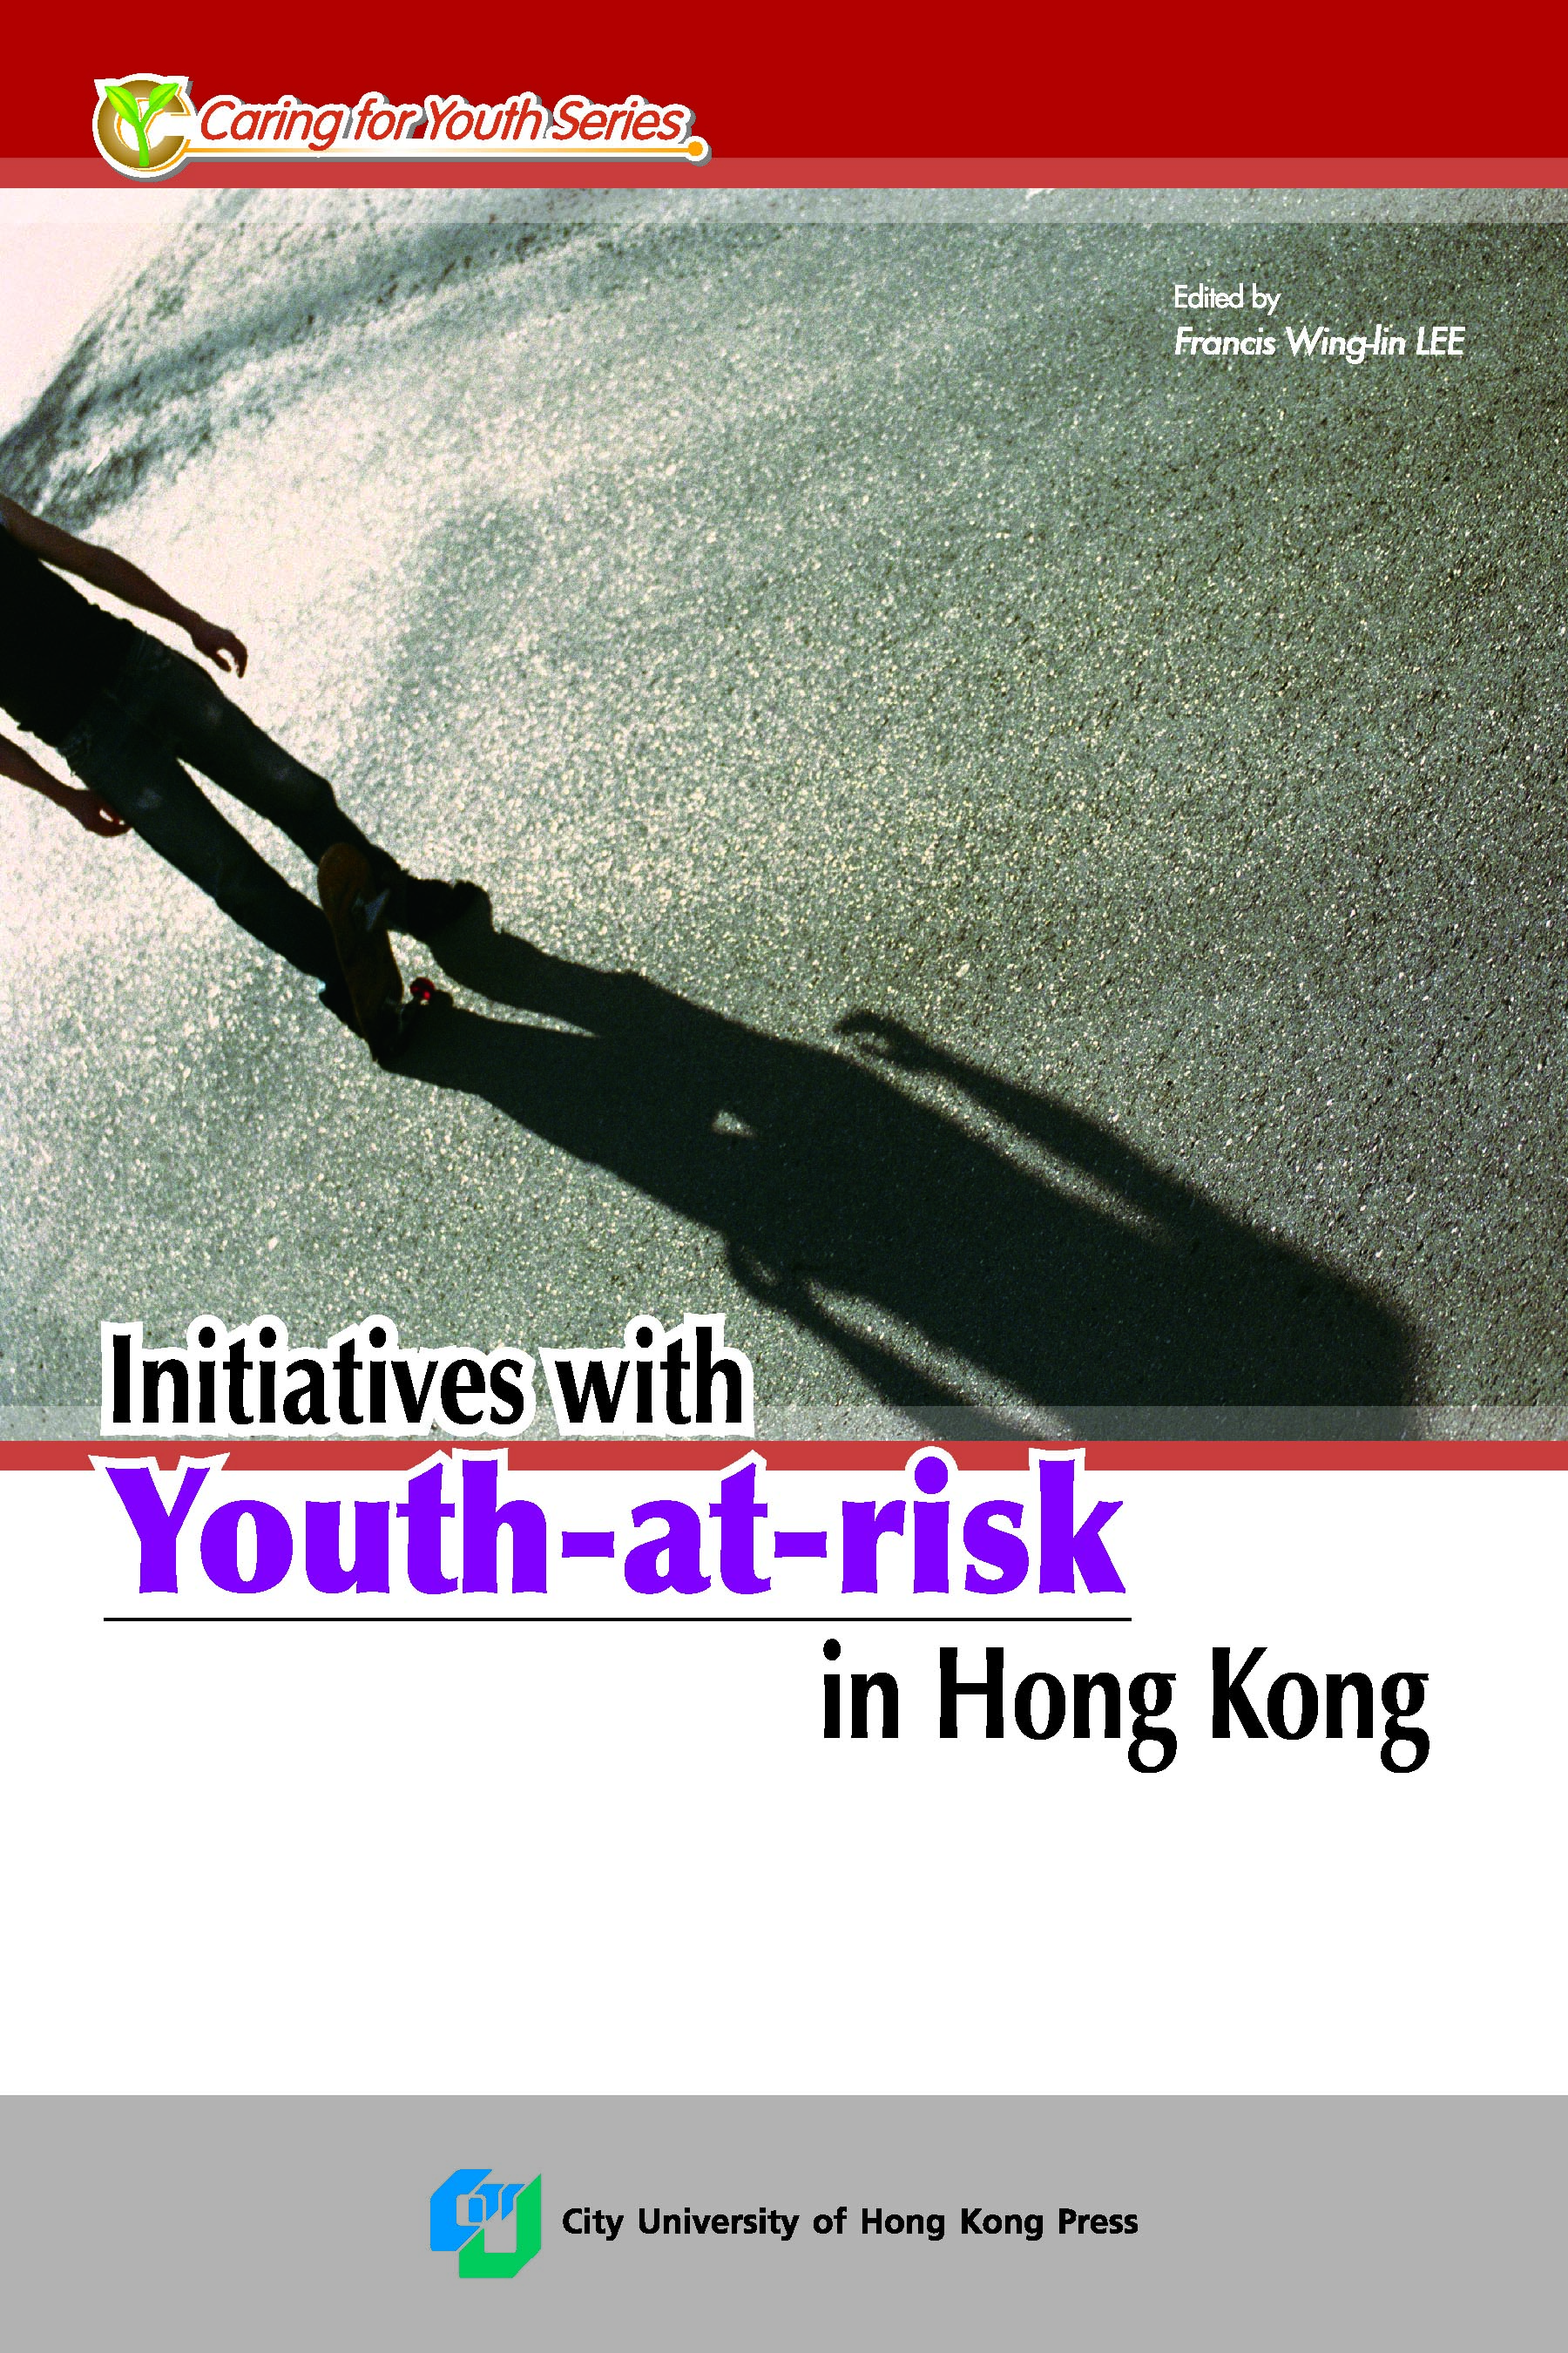 Initiatives with Youth-at-risk in Hong Kong